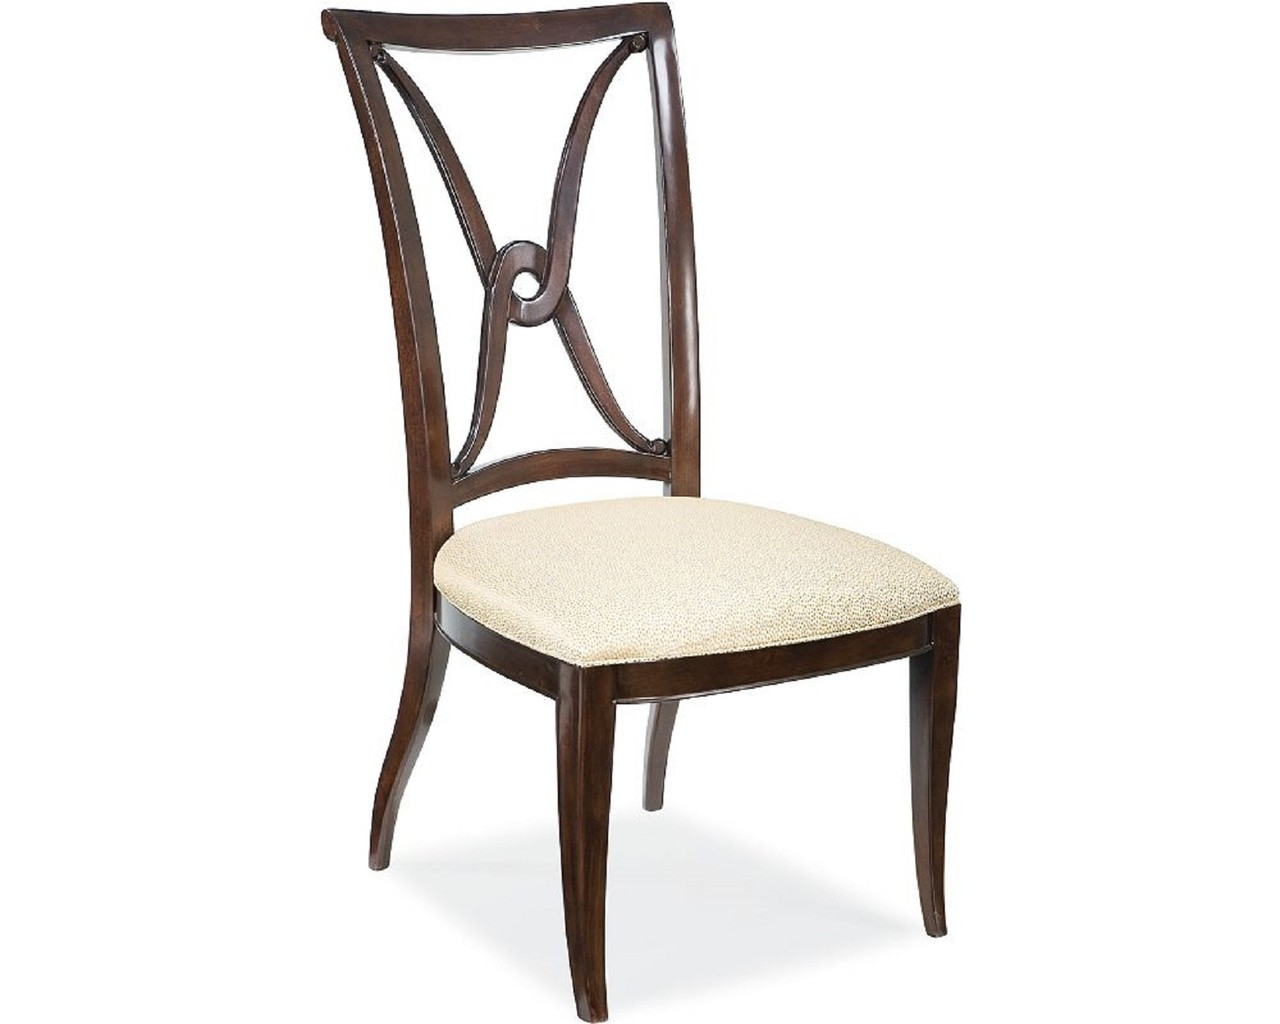 Thomasville Furniture Studio 455 Collection Dining Arm Chair 45521 831 45521 832 North Carolina Furniture Solid Wood Furniture Closeout Furniture Wholesale Furniture Discontinued Furniture Thomasville Dining